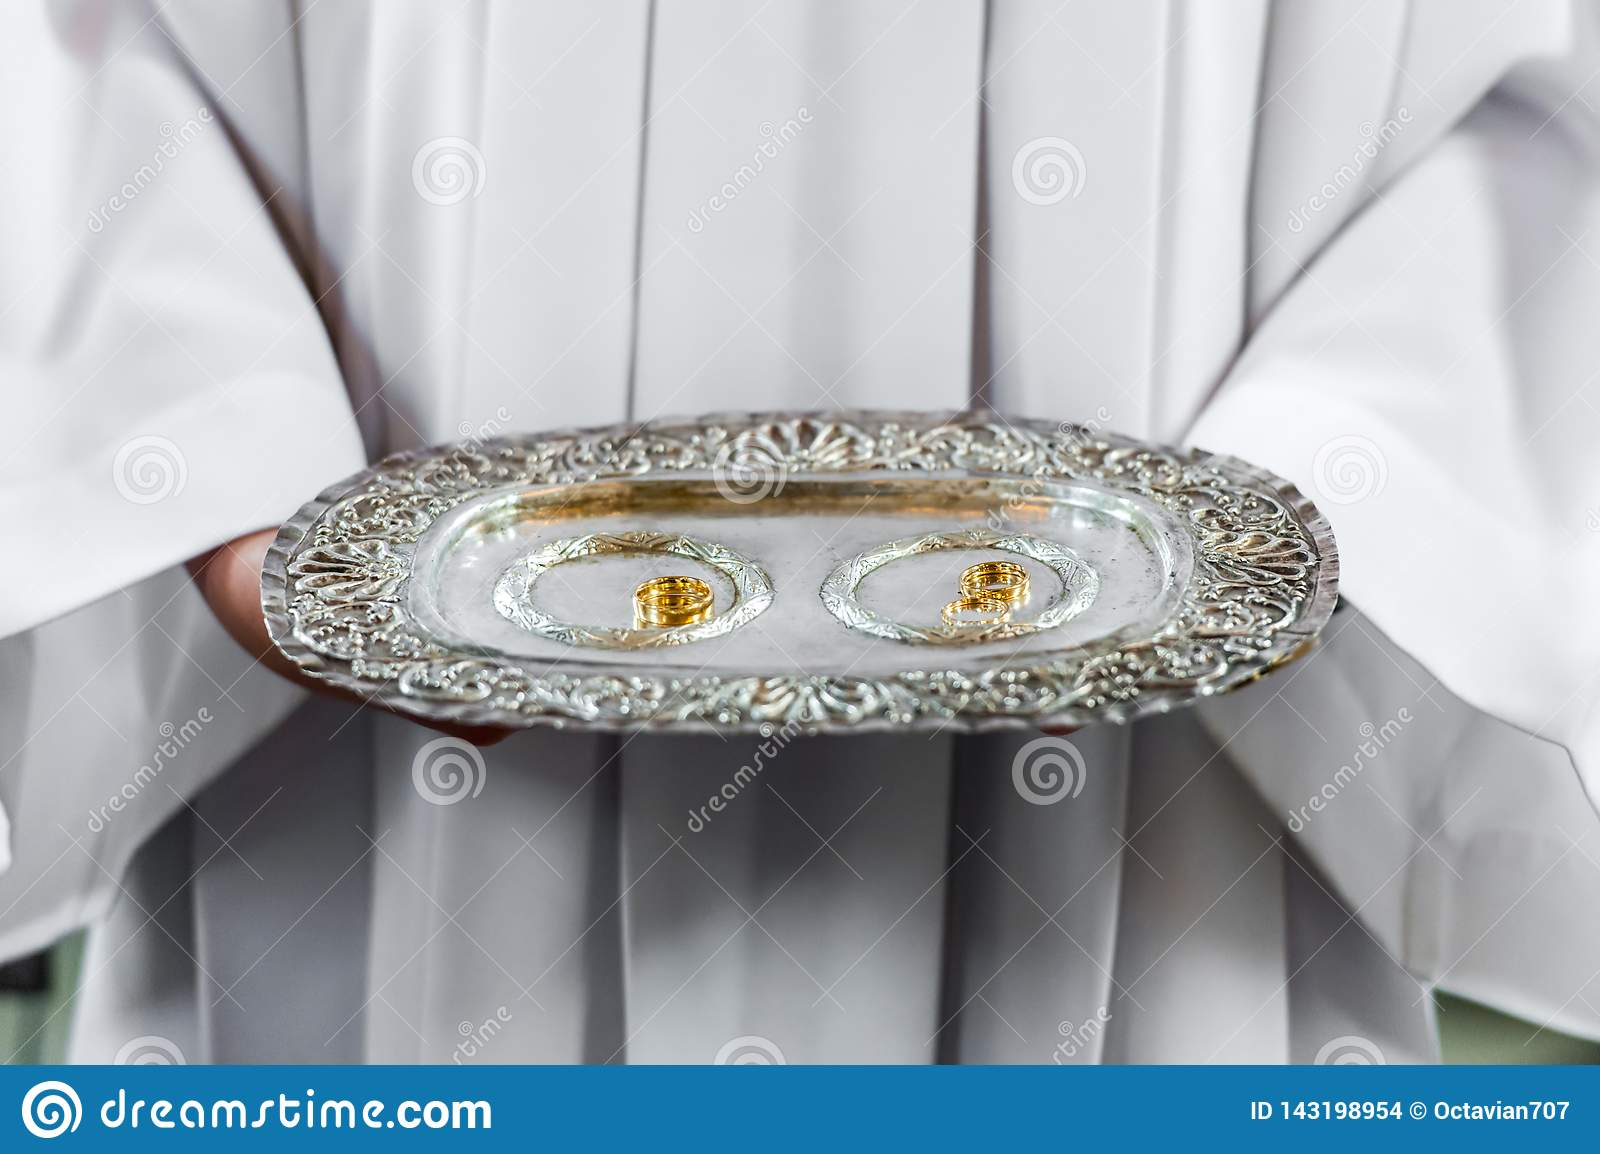 Priest and wedding rings on silver platter